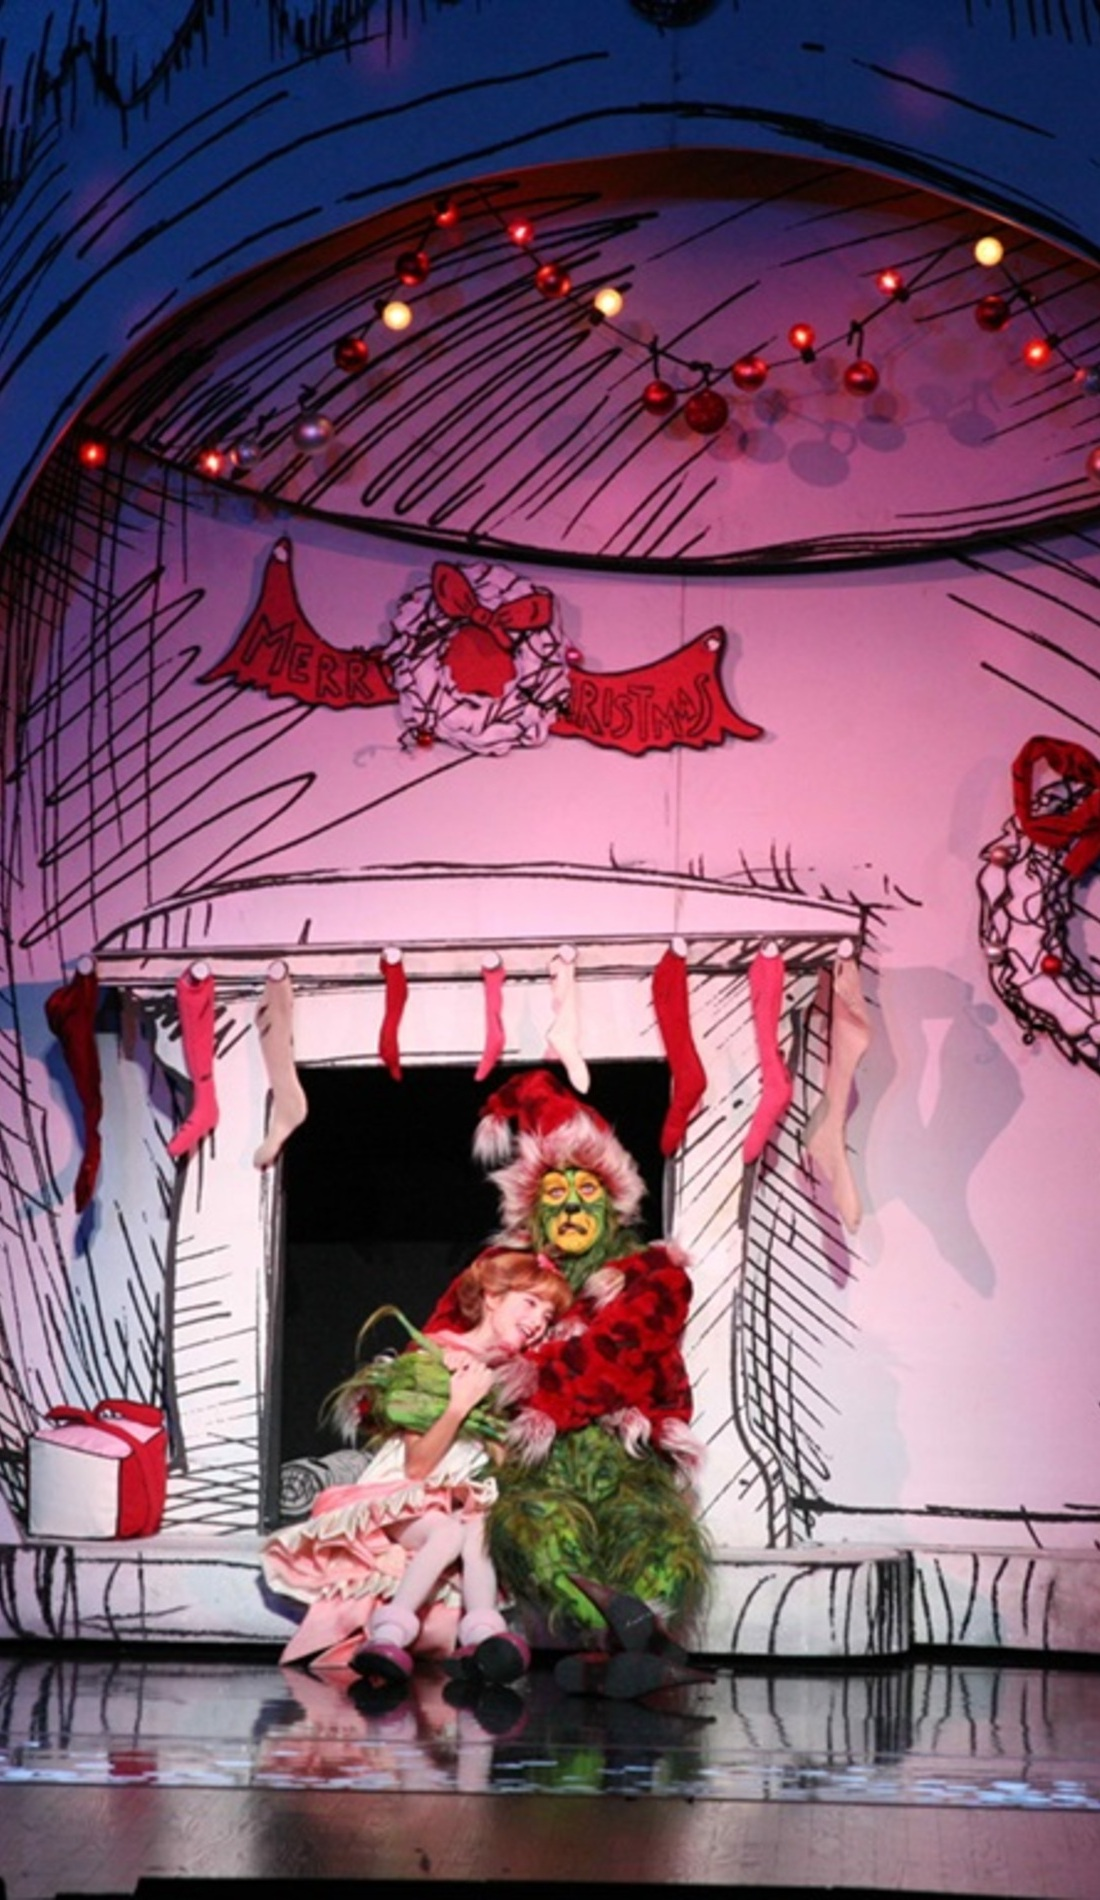 A How The Grinch Stole Christmas live event